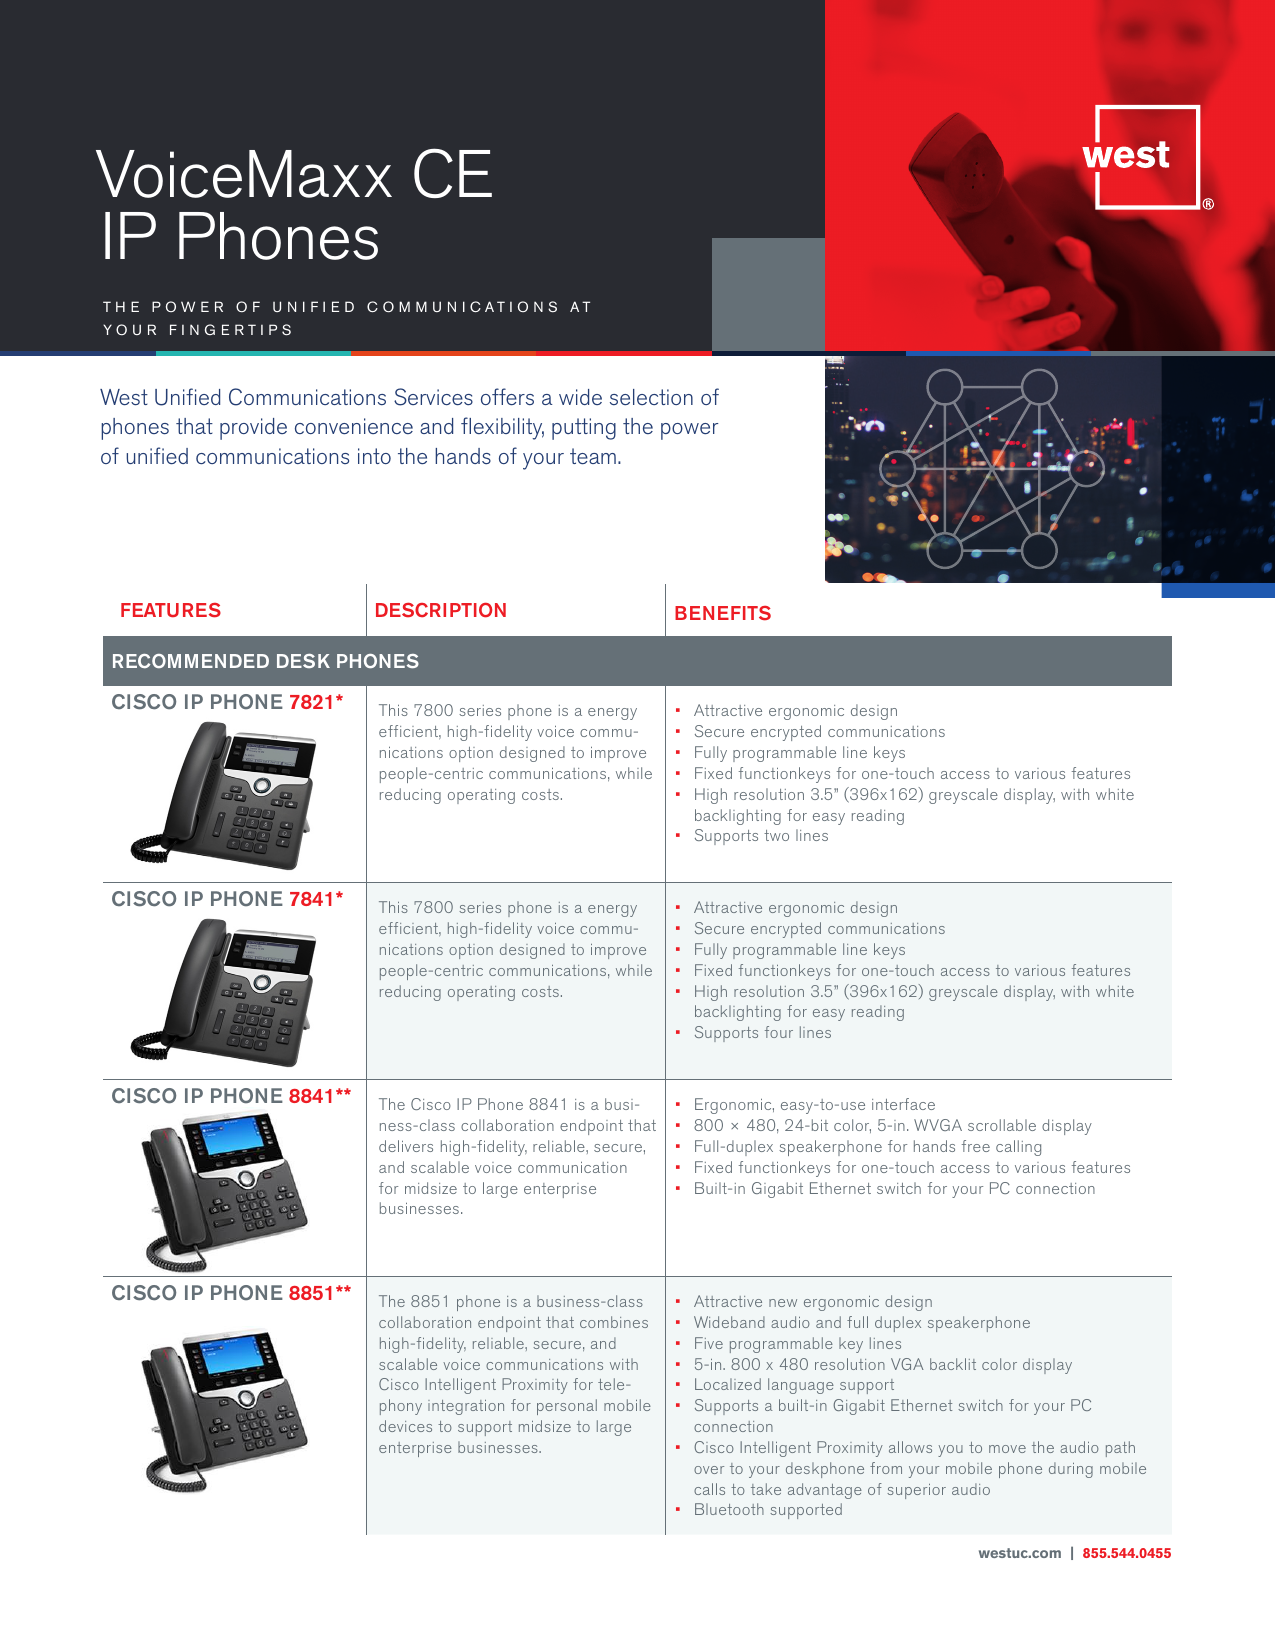 VoiceMaxx CE IP Phones - West Unified Communications Services